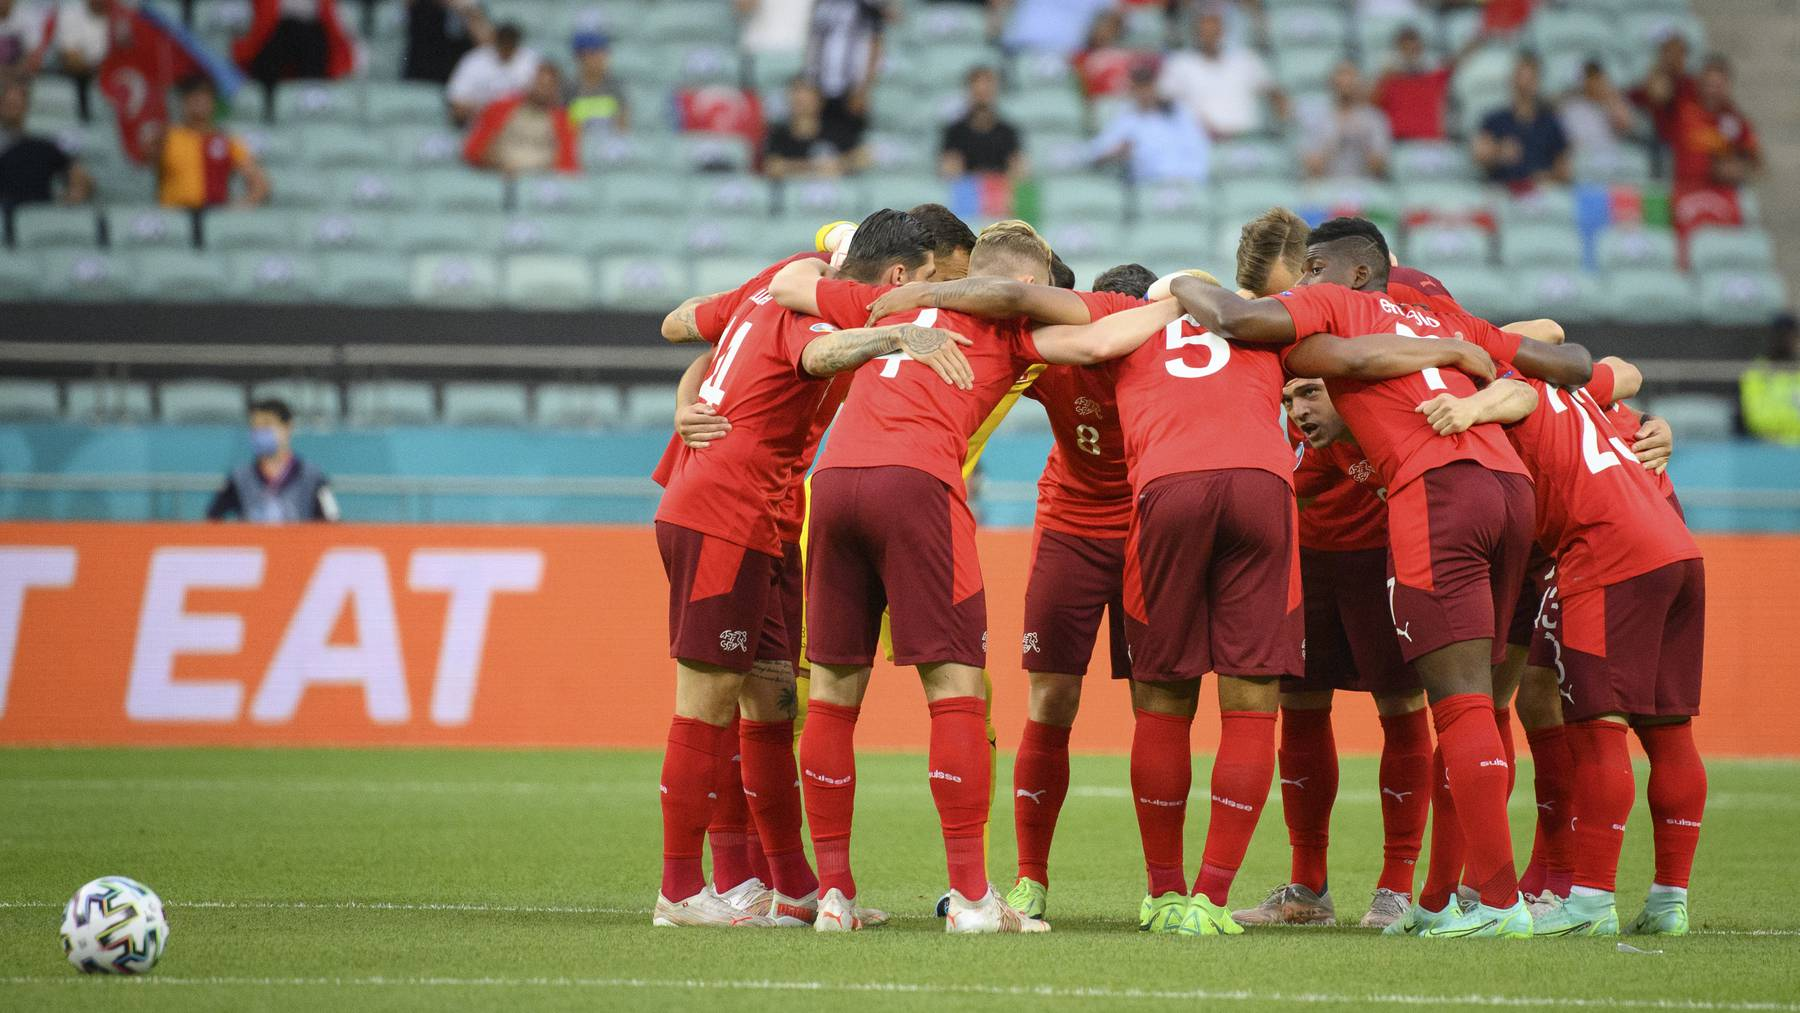 Switzerland's soccer national team players encourage each other before the Euro 2020 soccer tournament group A match between Switzerland and Turkey at the Olympic stadium, in Baku, Azerbaijan, Sunday, June 20, 2021.